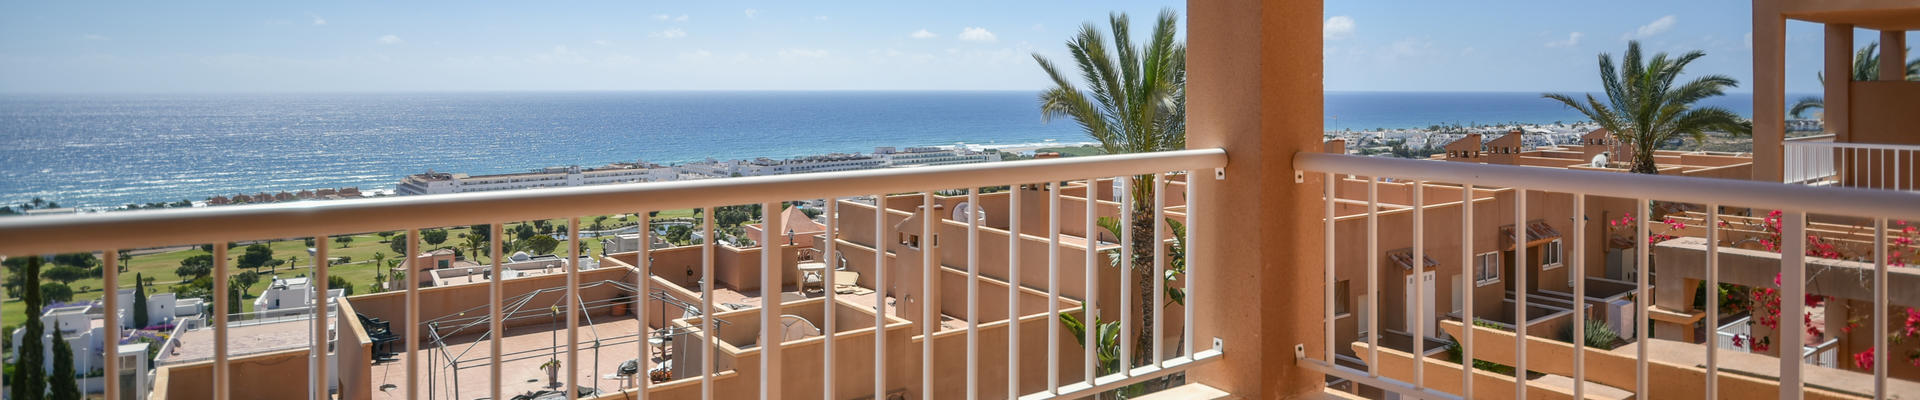 A1316: 3 Bedroom Apartment for Sale